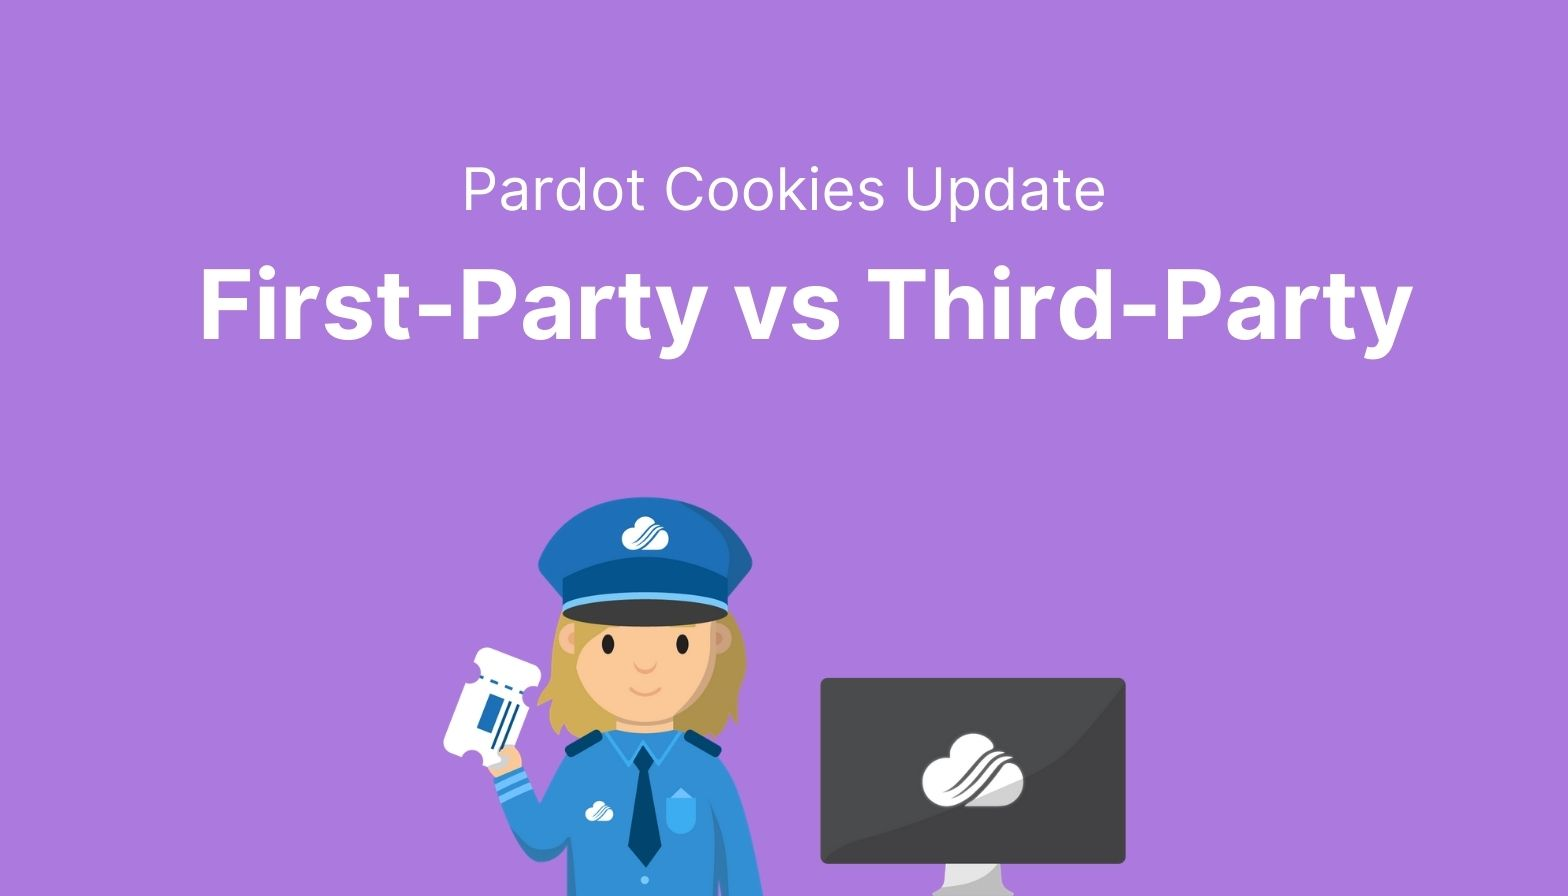 Pardot cookies update: first-party vs third-party